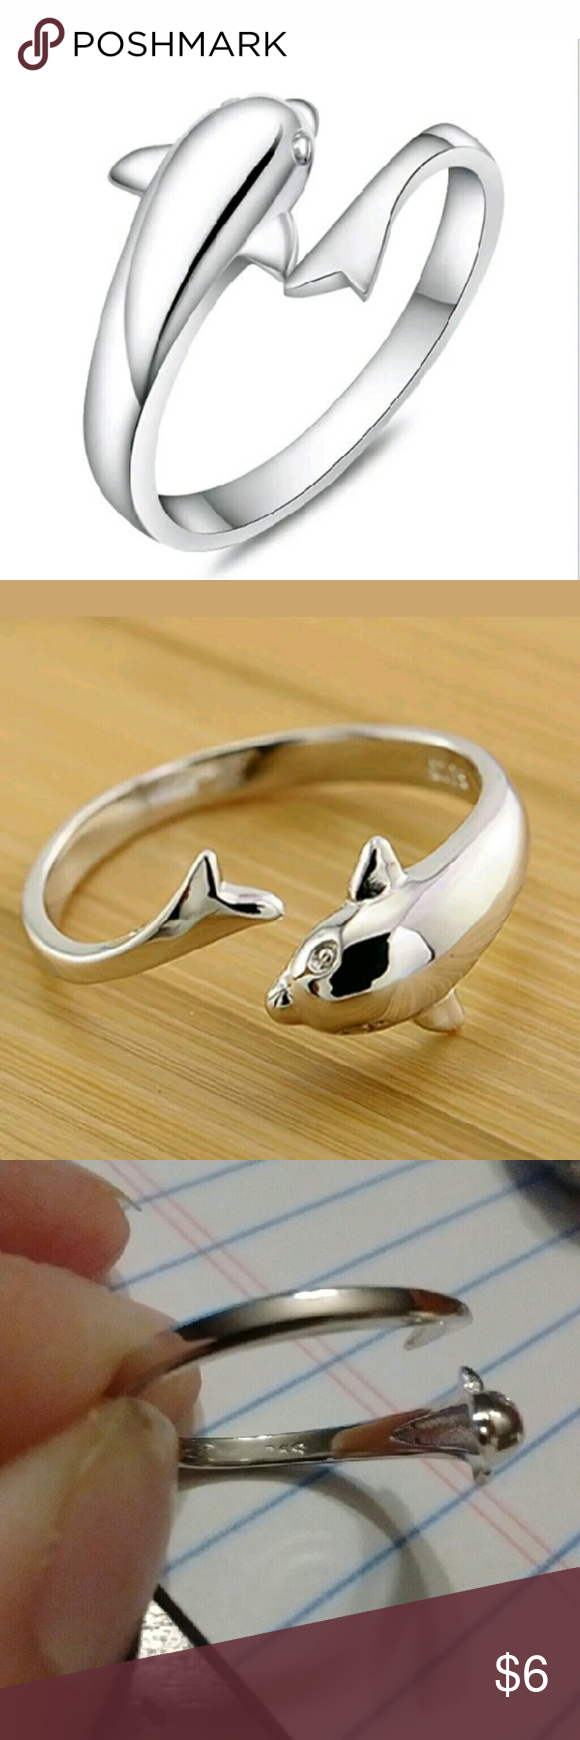 Size 7 Sterling Silver Dolphin Ring Brand new, sterling silver size seven dolphin ring. Jewelry Rings